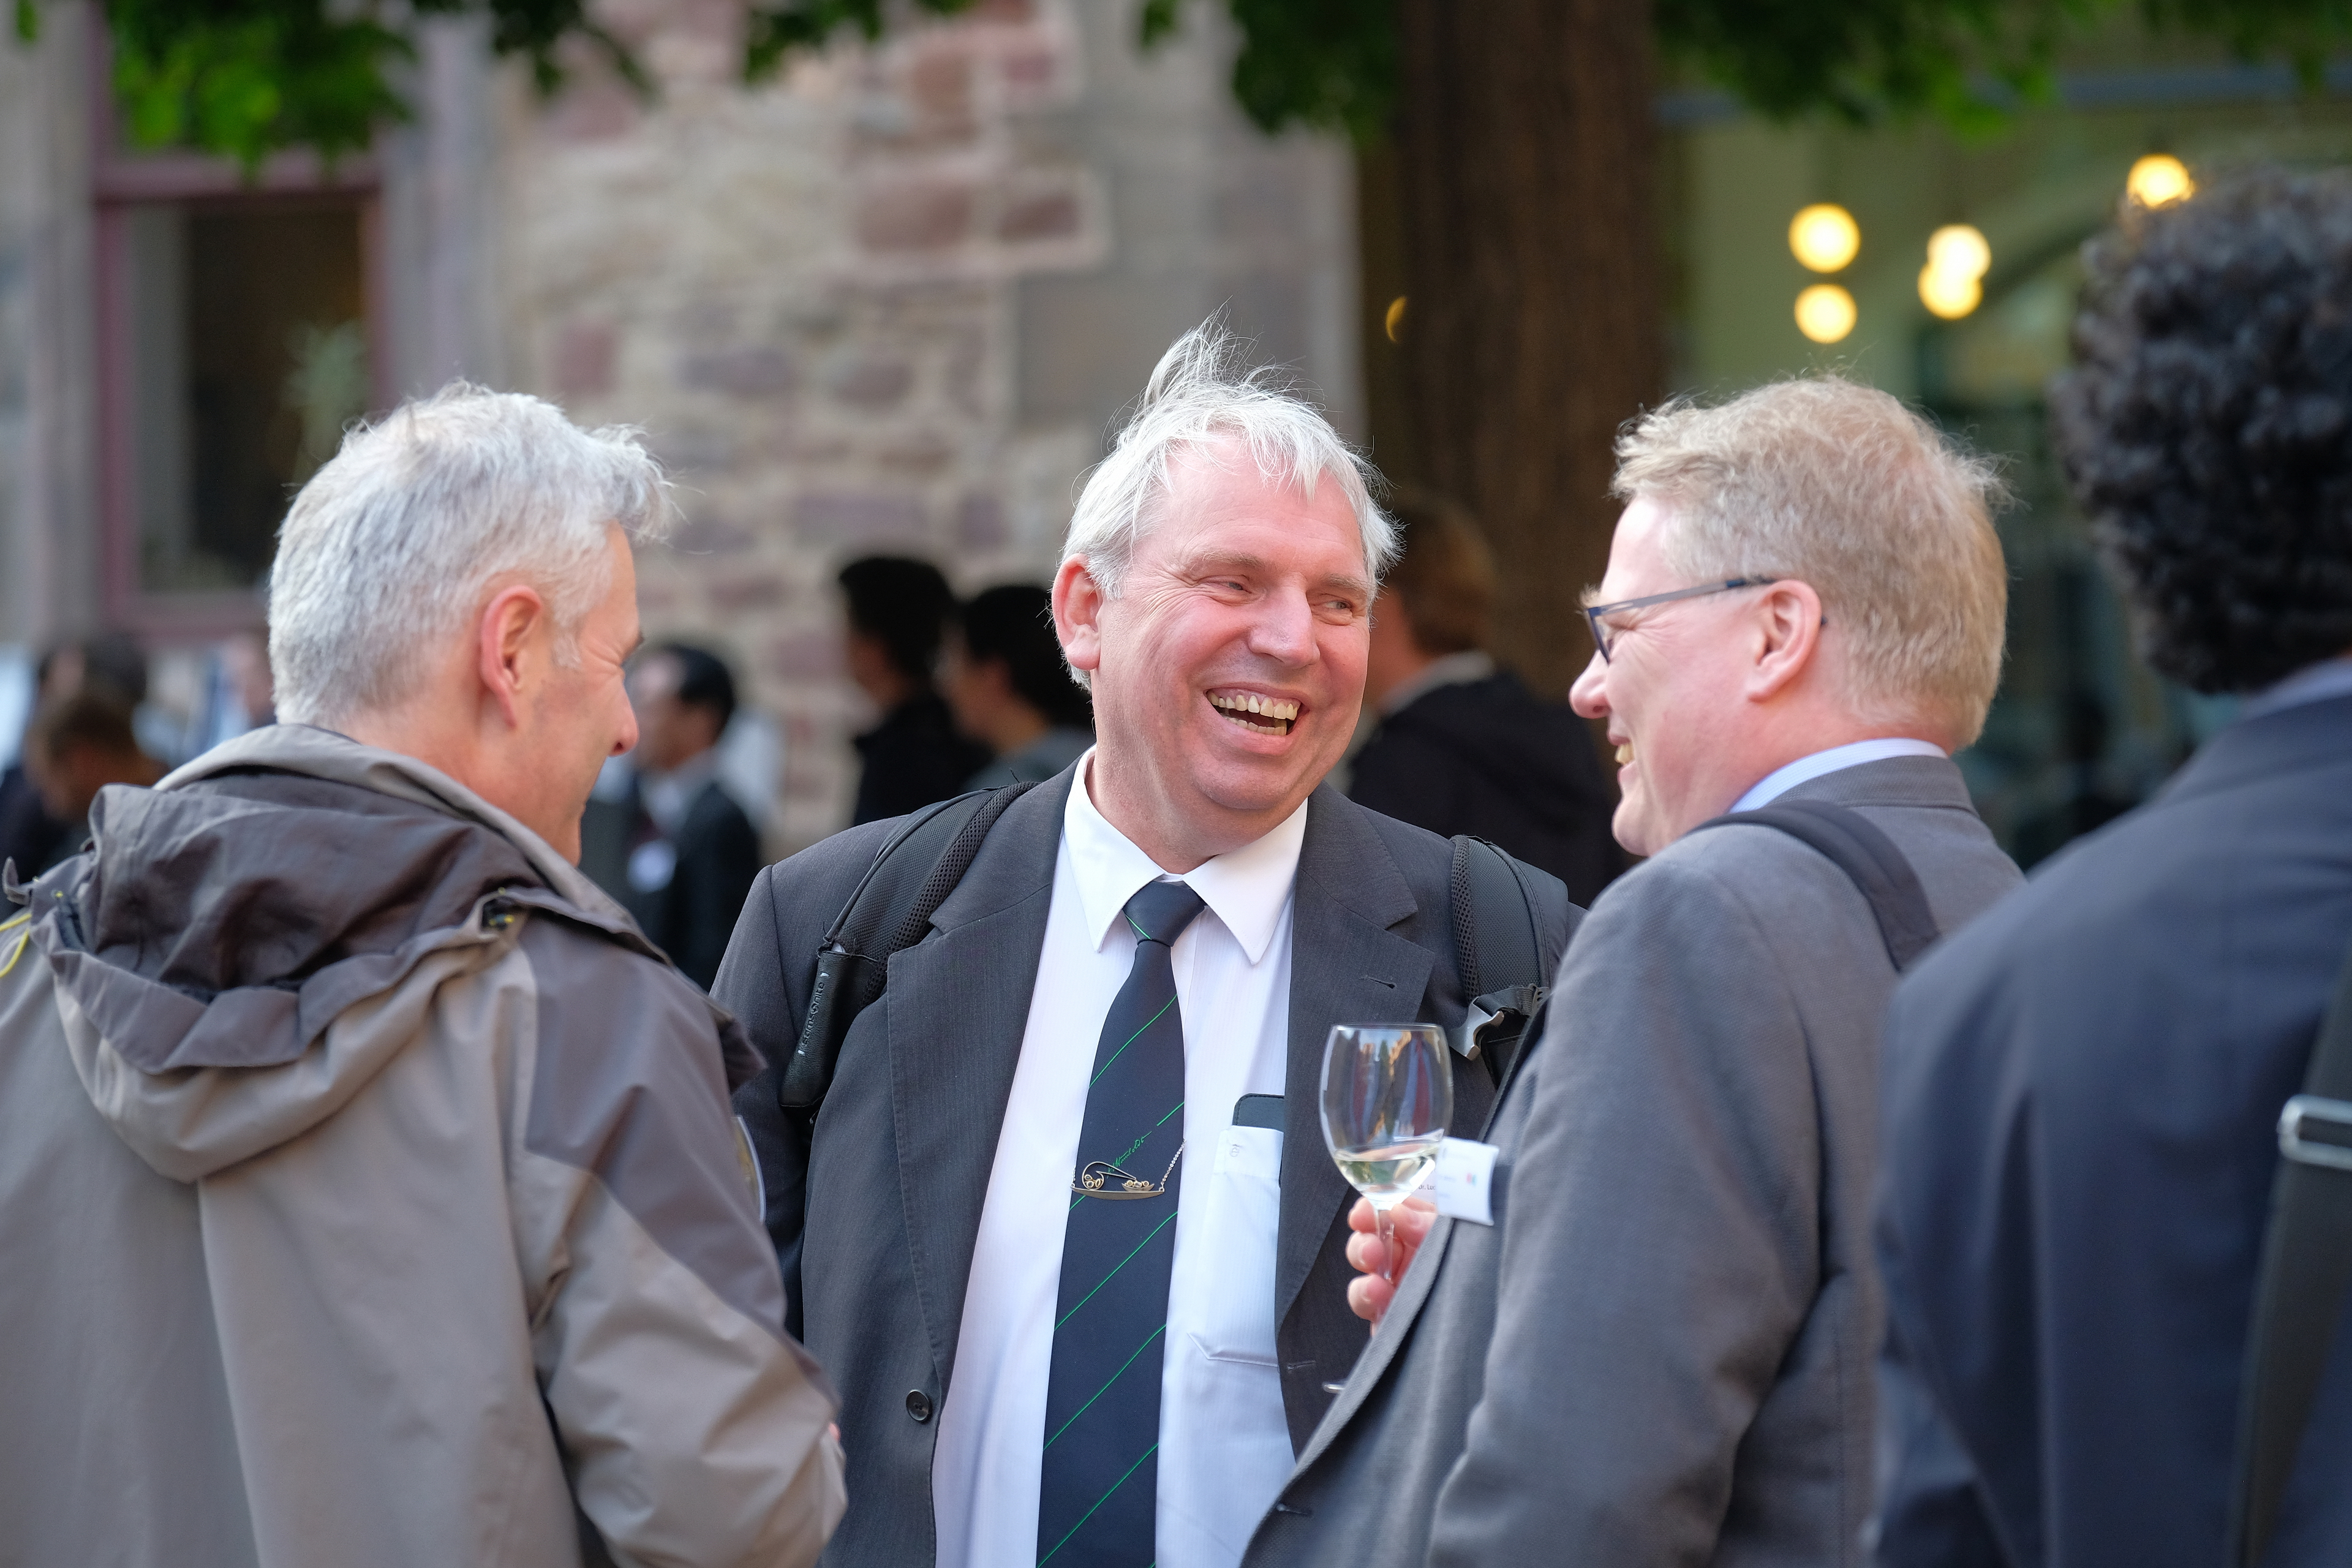 Ludger Wessjohann at the dinner event in the Moritzburg Halle (Foto: Michael Deutsch).JPG